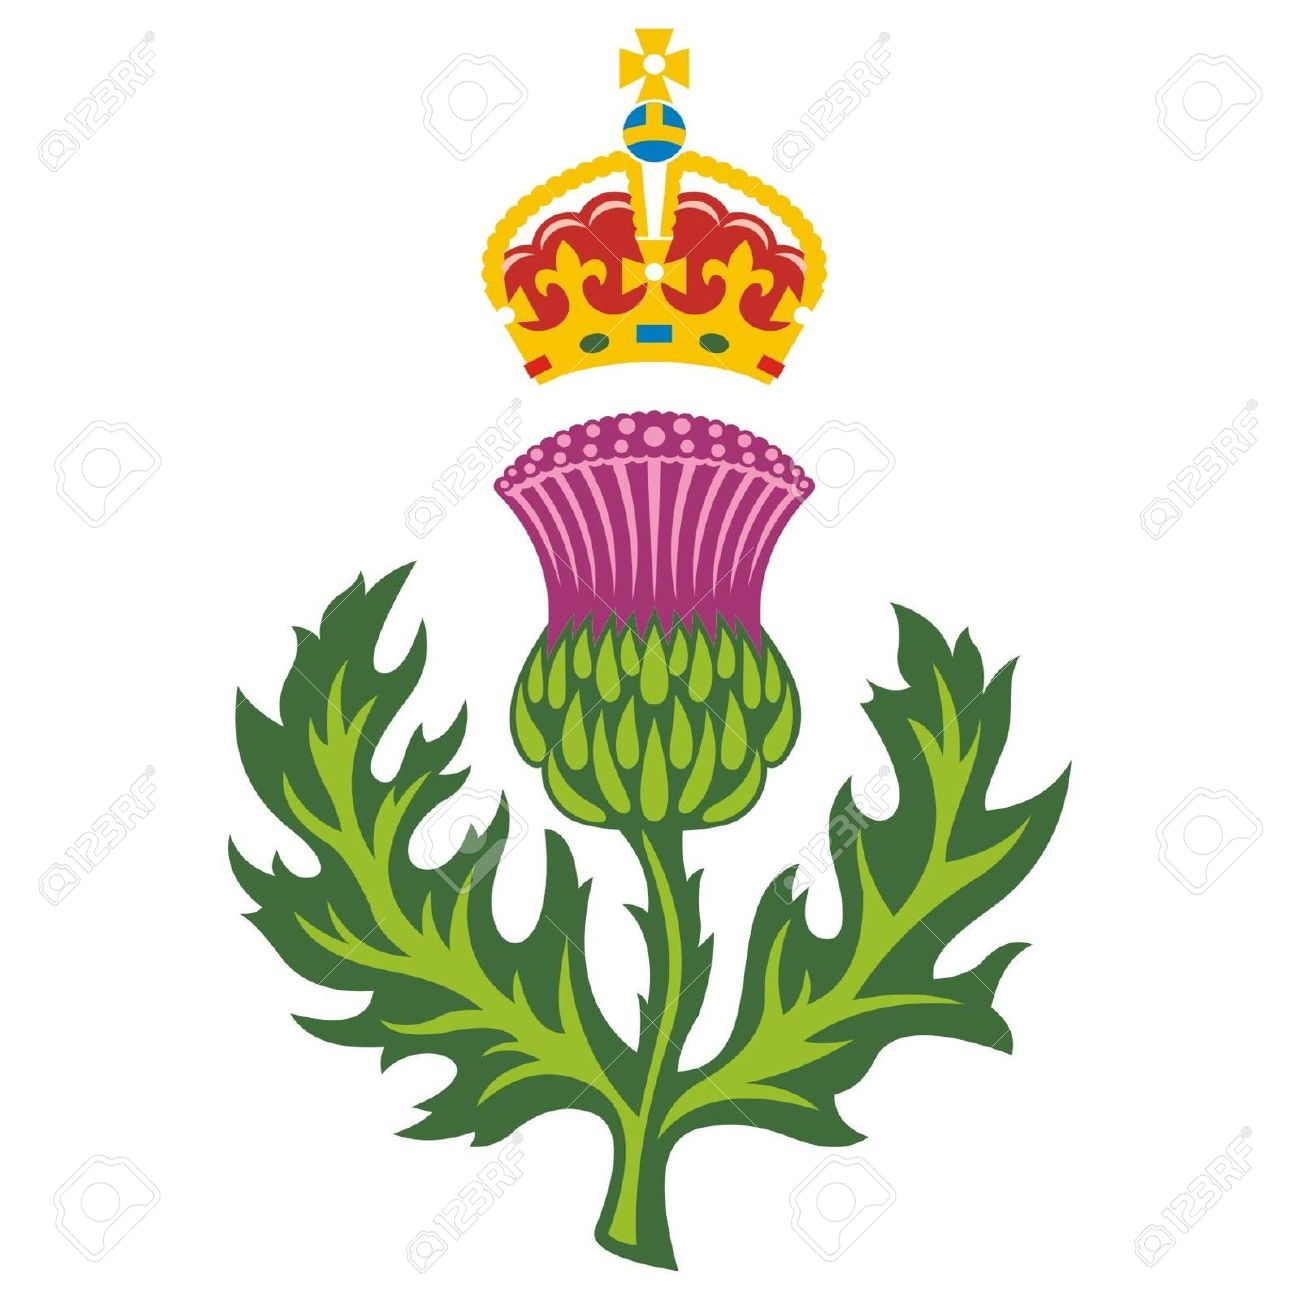 Thistle clipart scotland jpg royalty free library Scottish thistle clipart 9 » Clipart Station jpg royalty free library